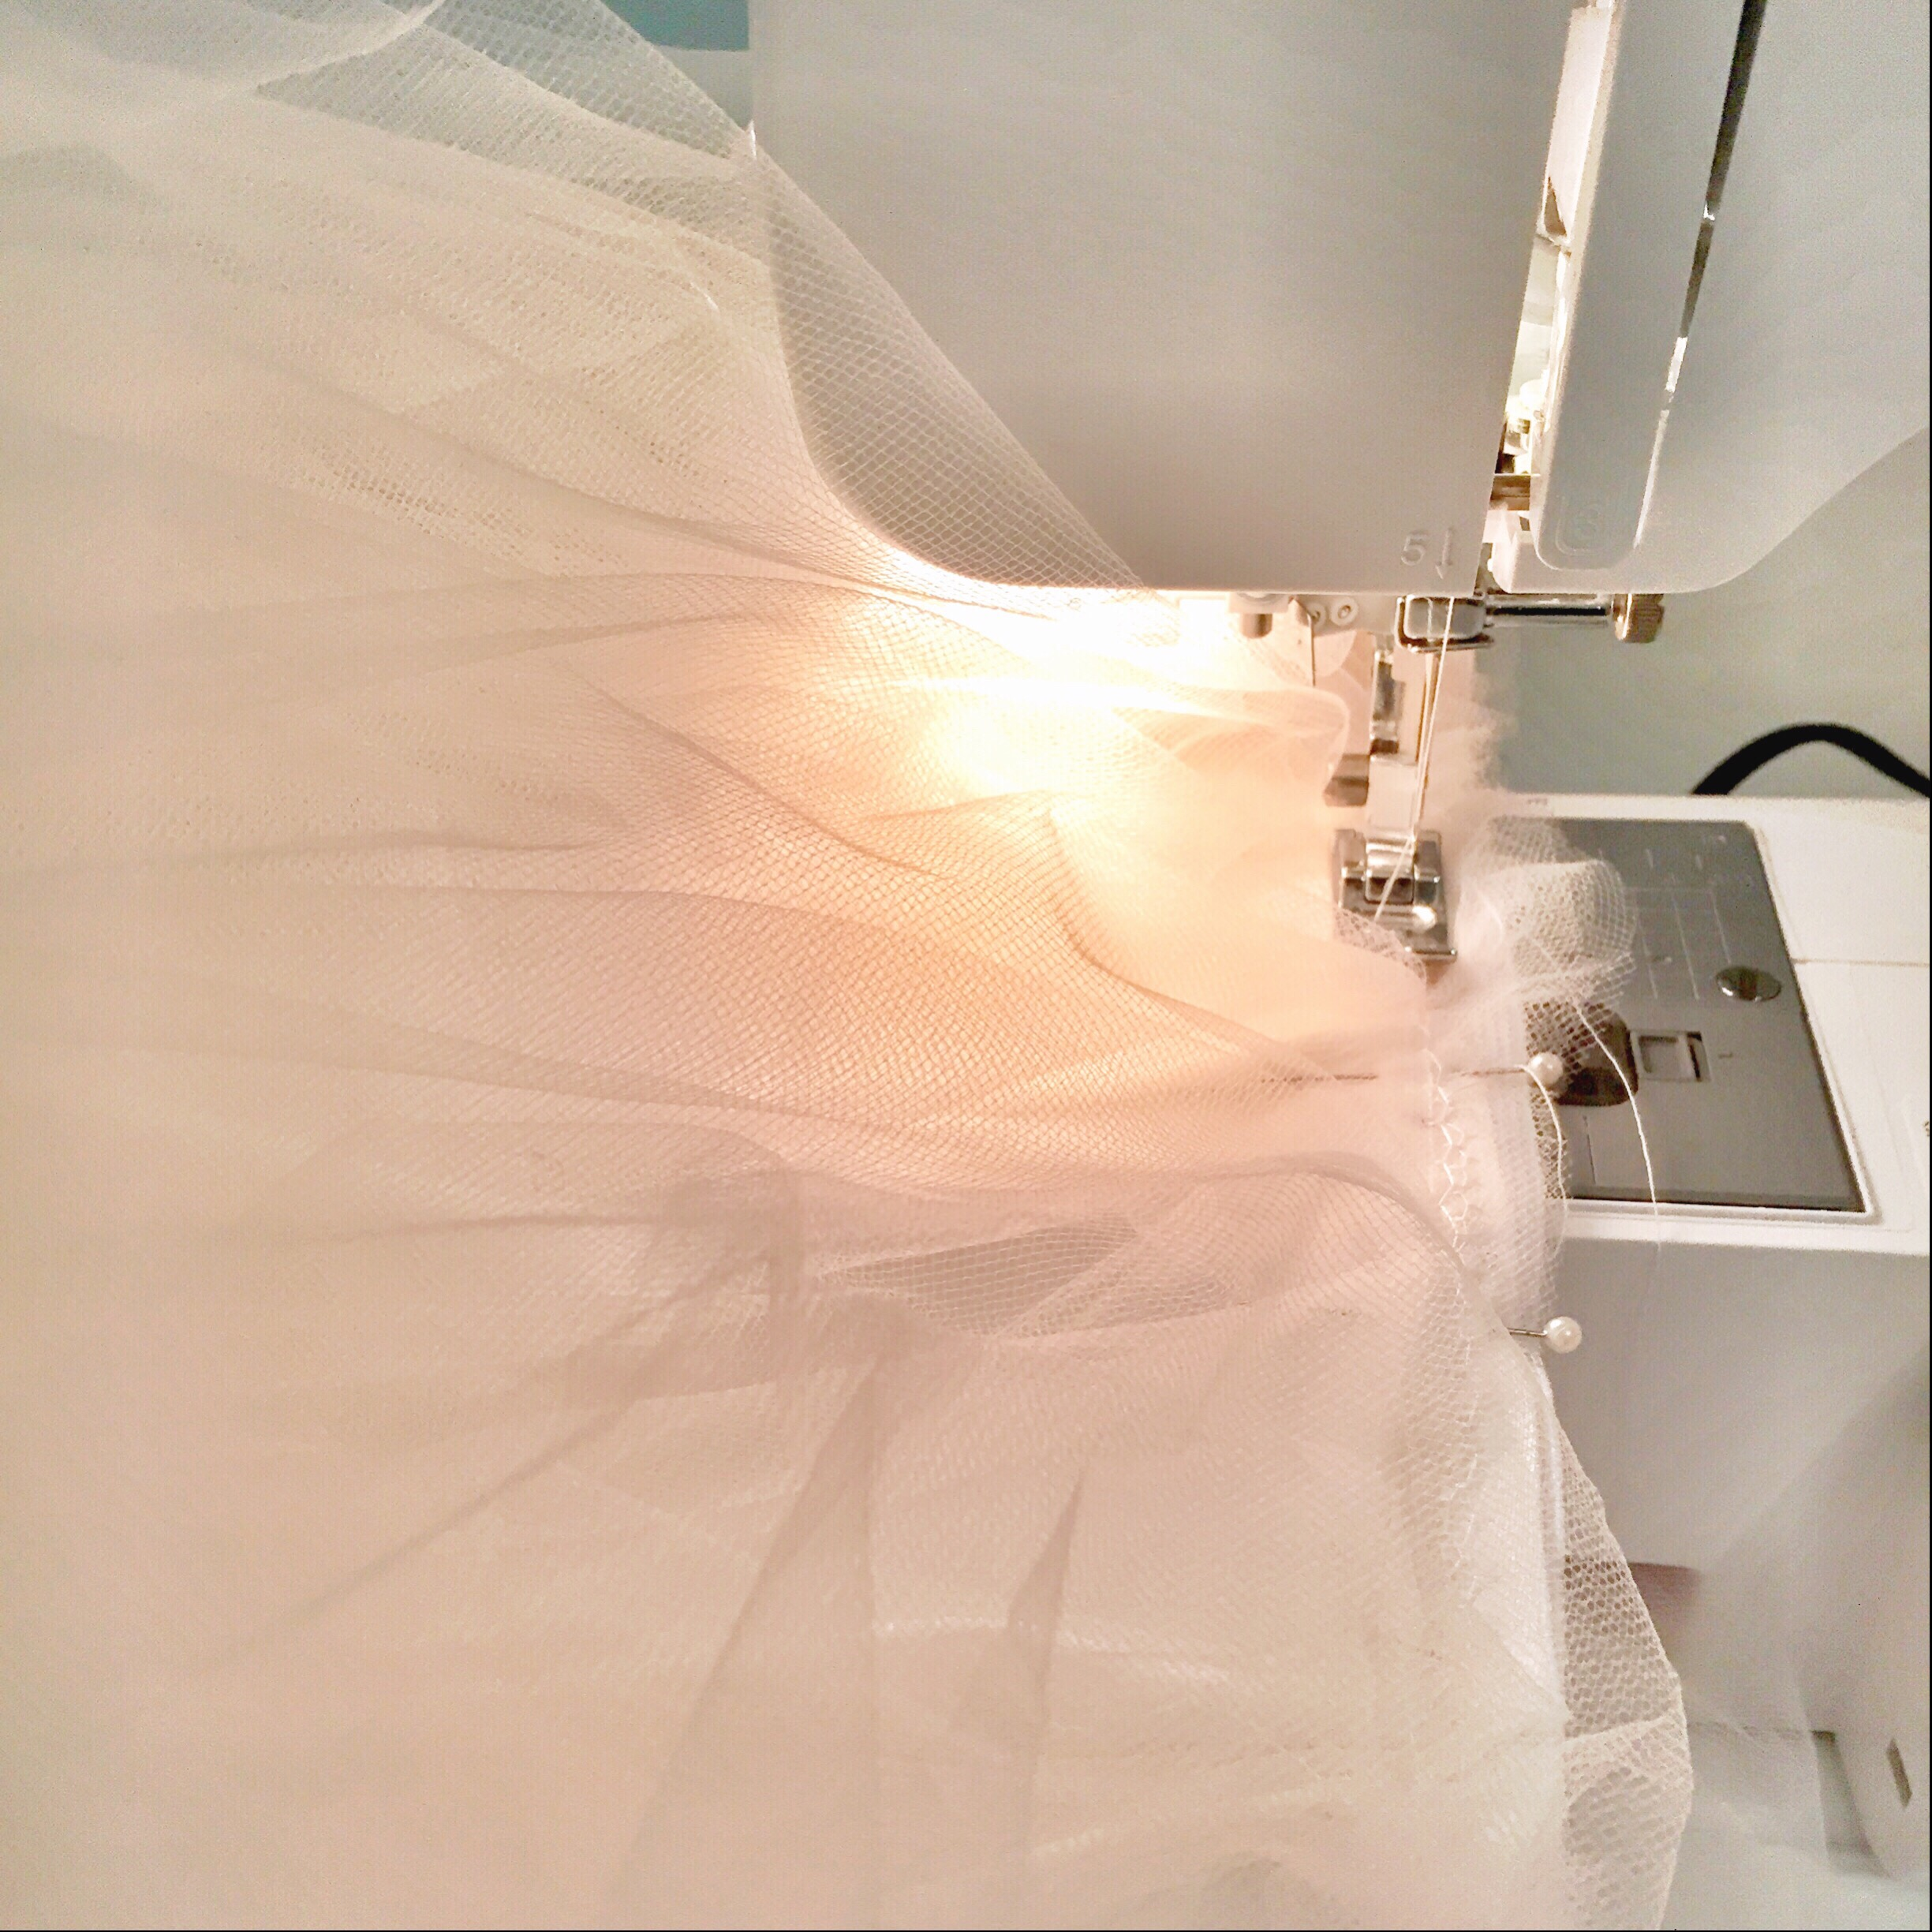 #sewmuchtulle